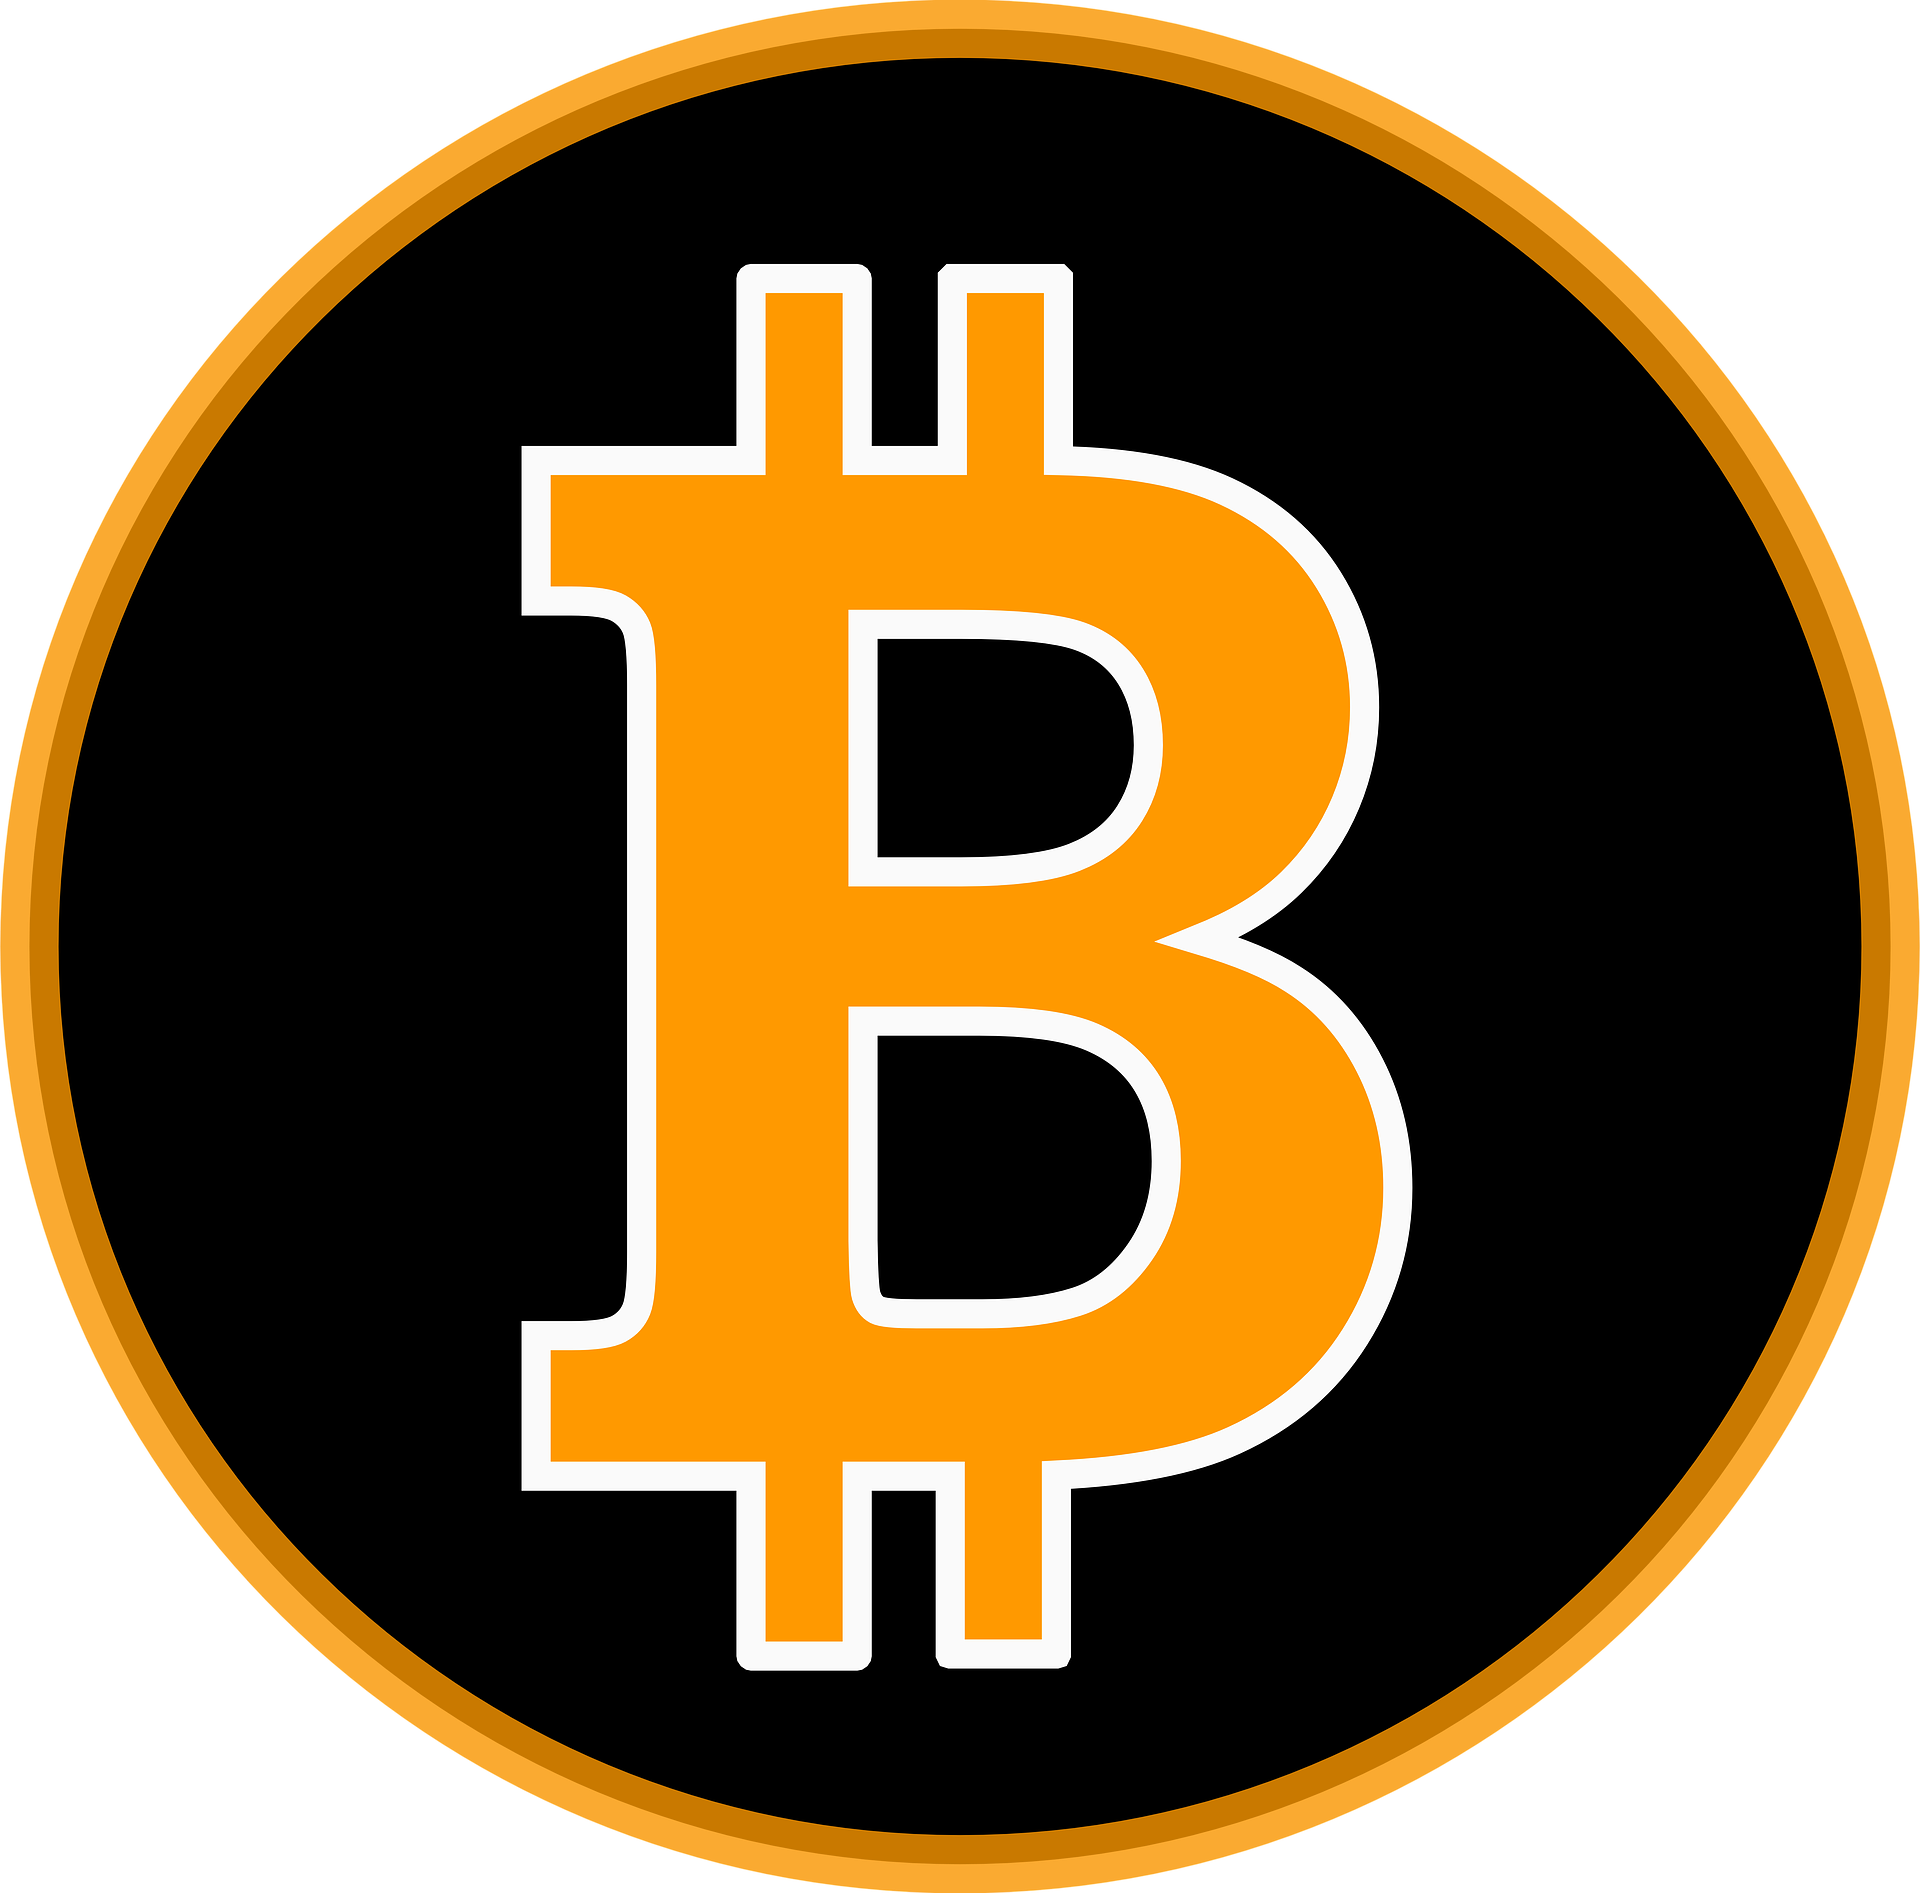 Coin Base Logo 2 Png Transparent Download In 2020 Coin Logo Buy Cryptocurrency Logos